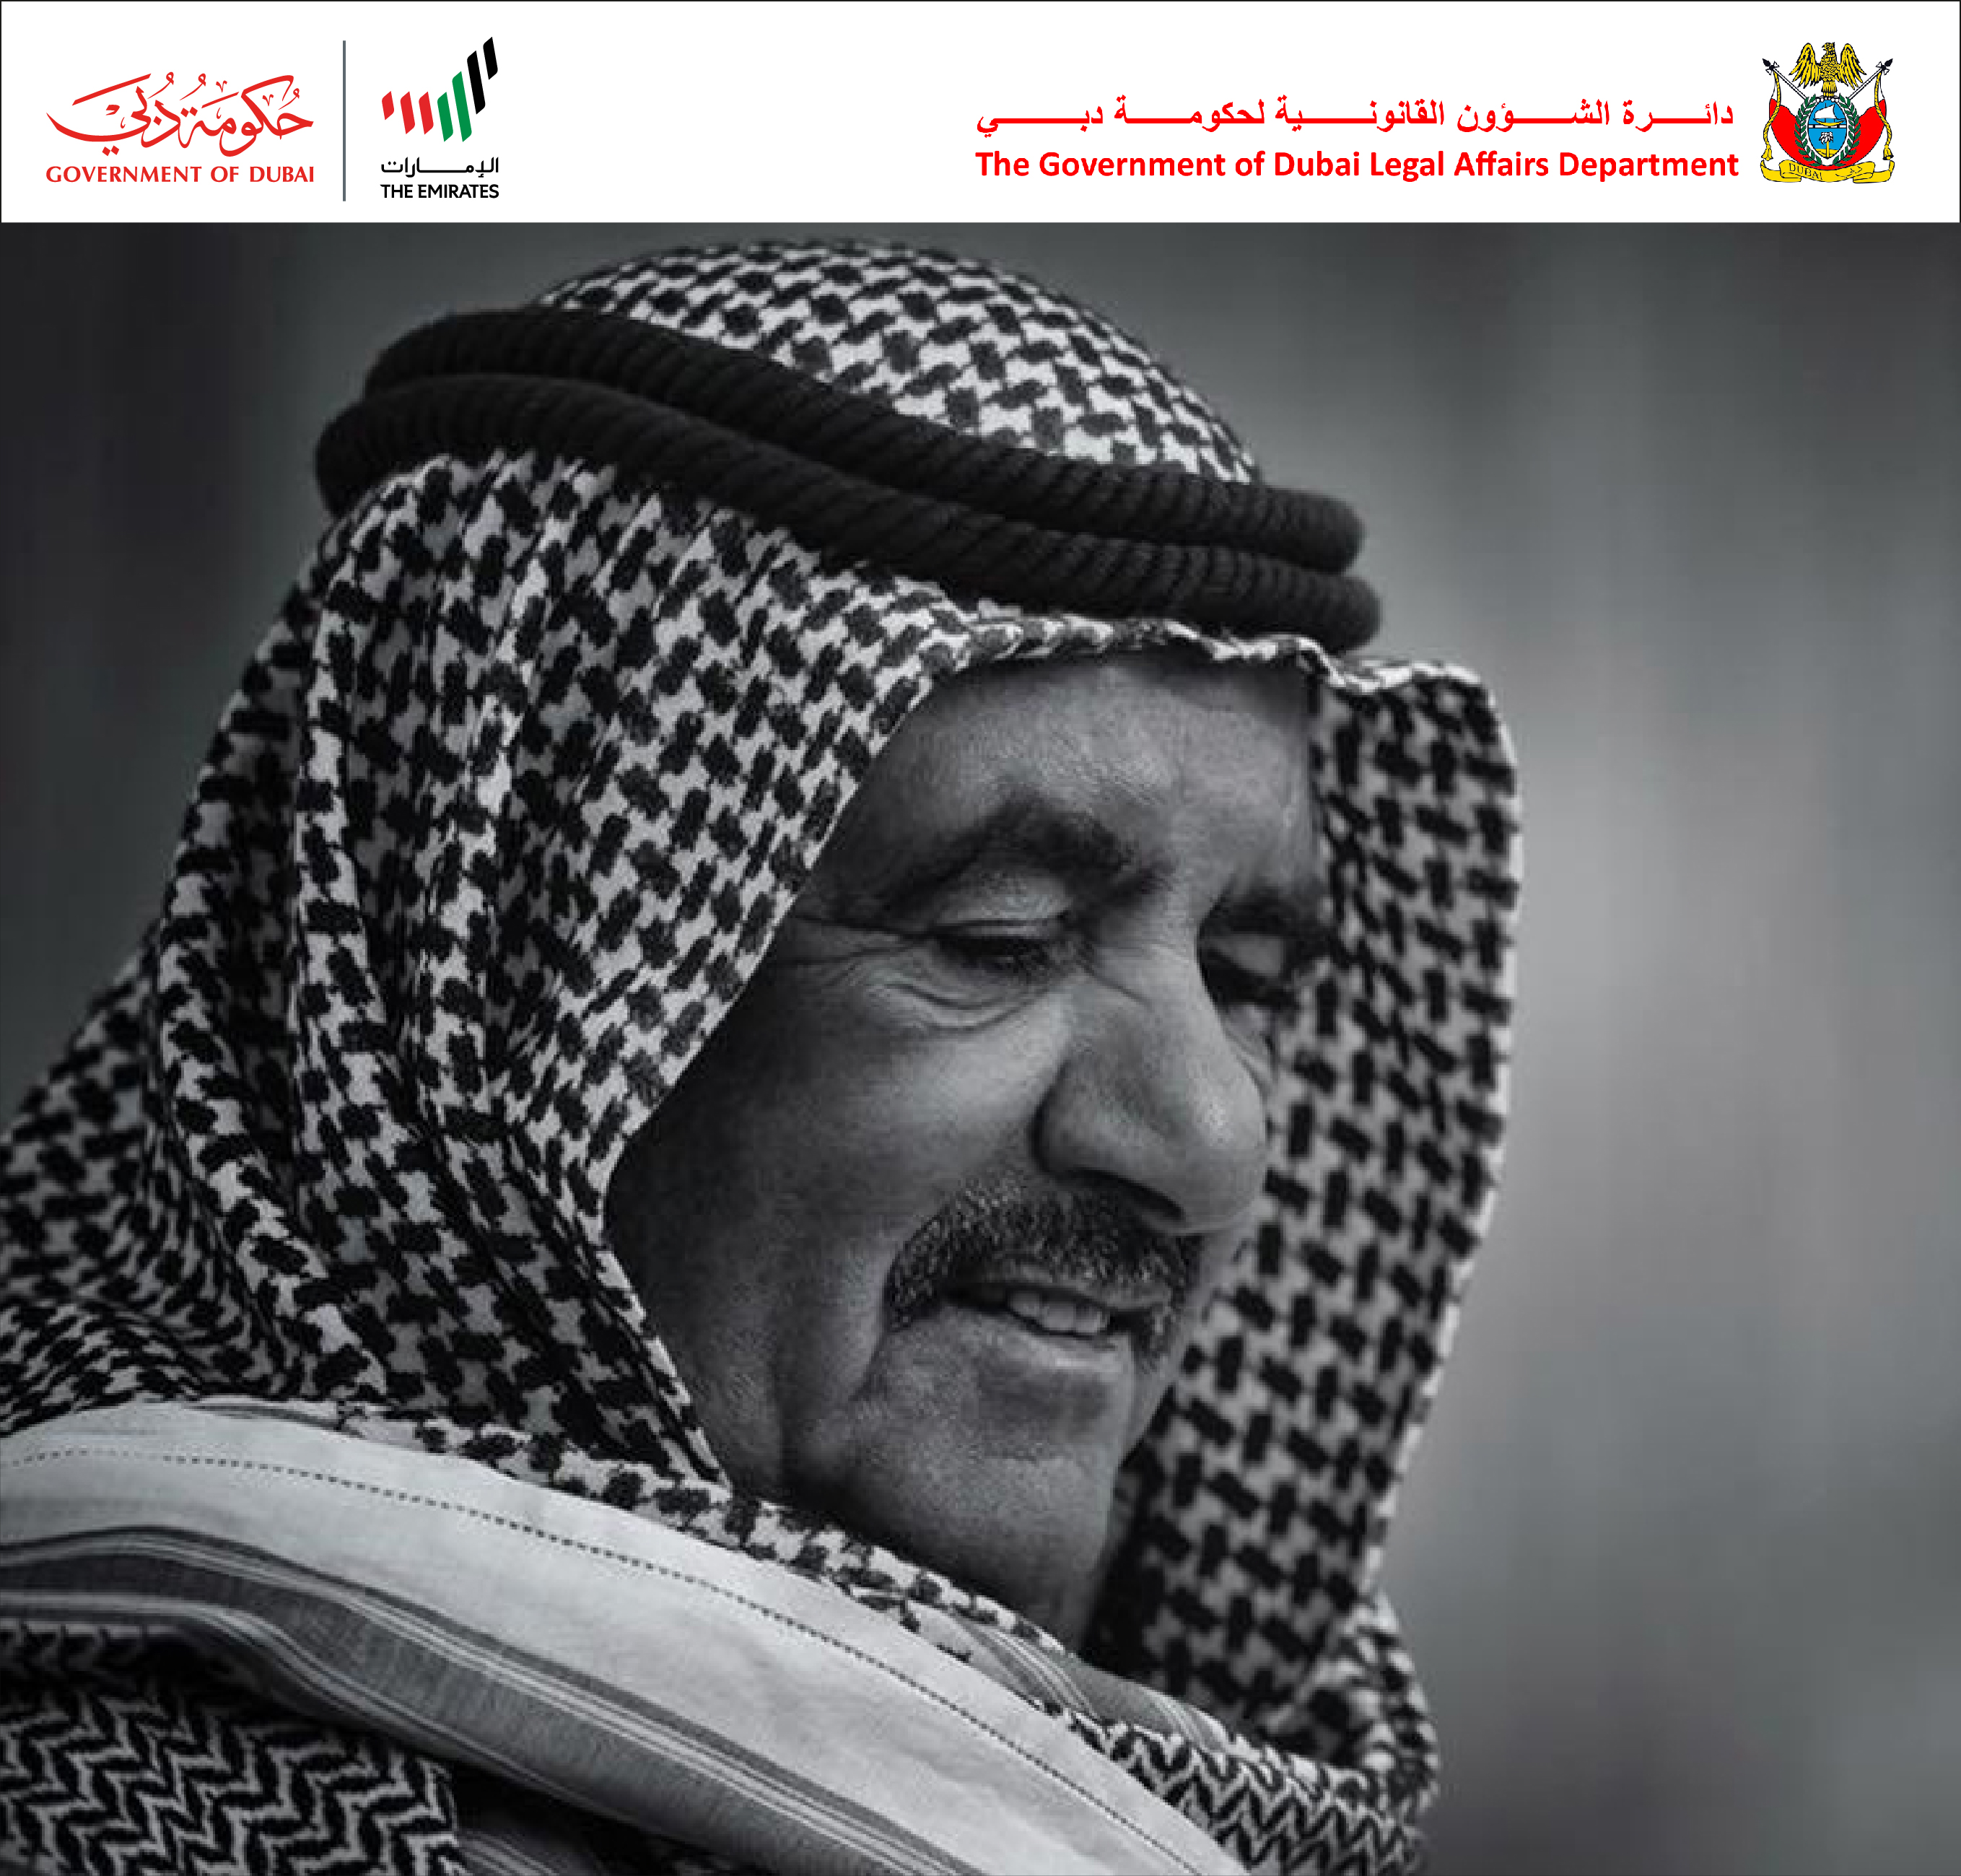 Statement by His Excellency the Director General of the Government of Dubai Legal Affairs Department on the sad loss of Sheikh Hamdan bin Rashid Al Maktoum